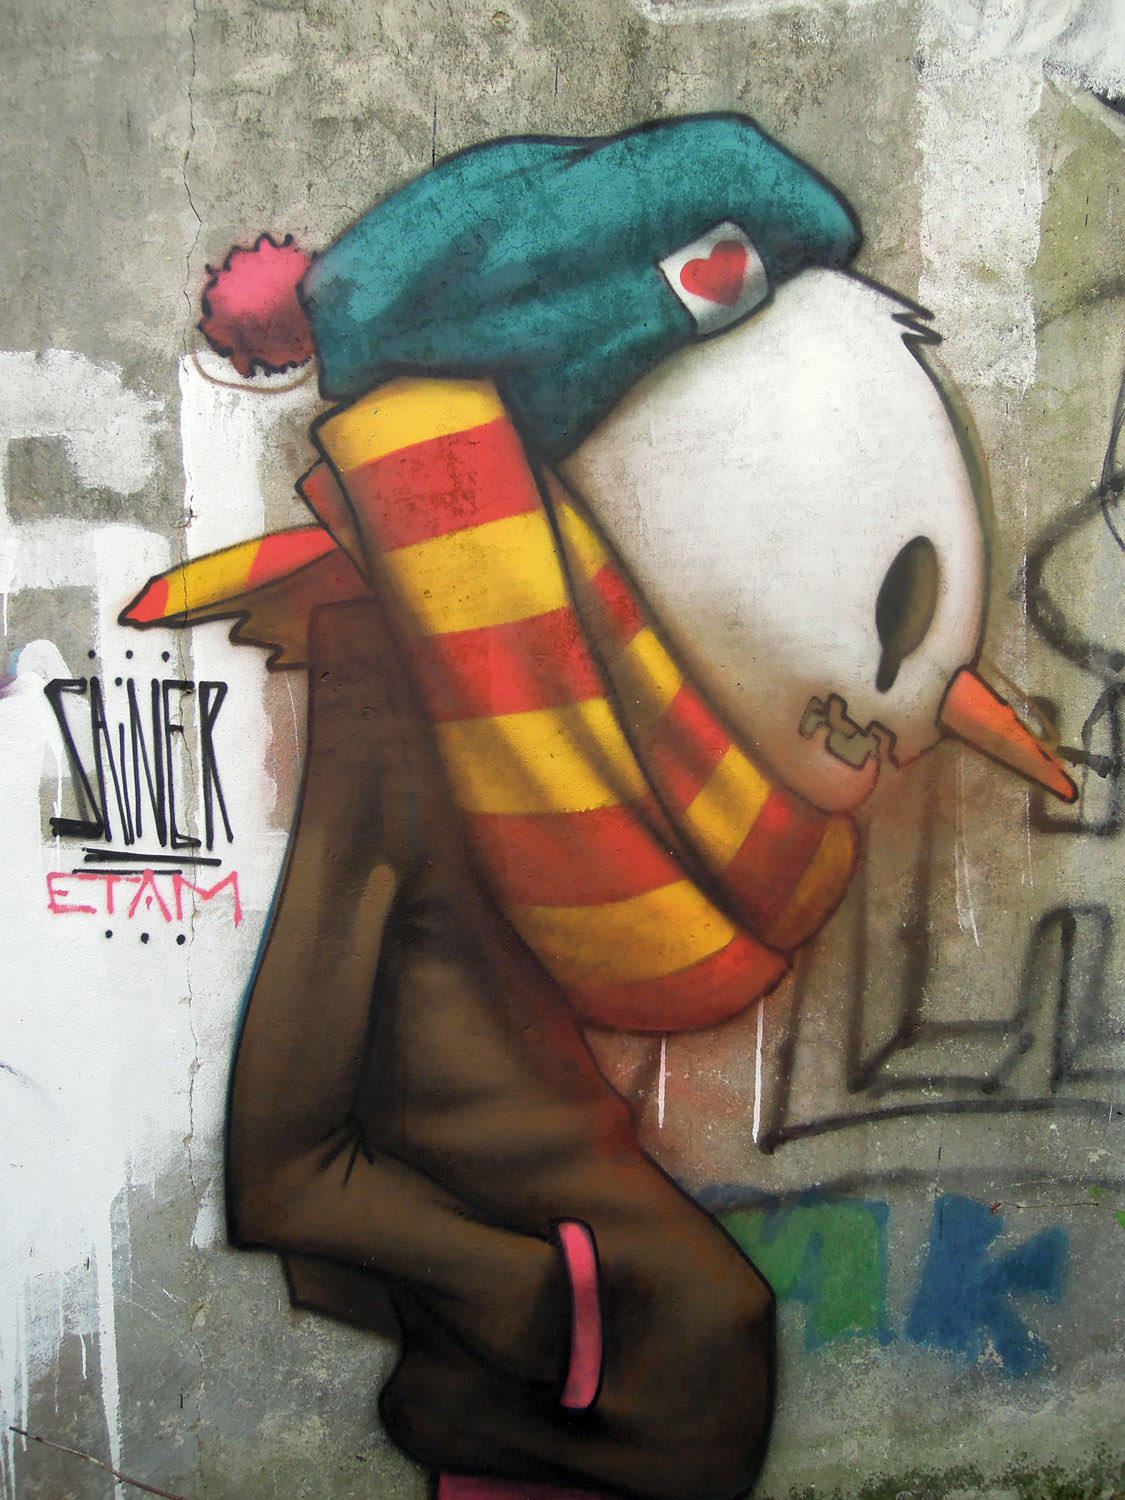 Graffiti wall painting - Snowman Head Graffiti Street Art Vandalism Sainer Etam Cru Wall Painting